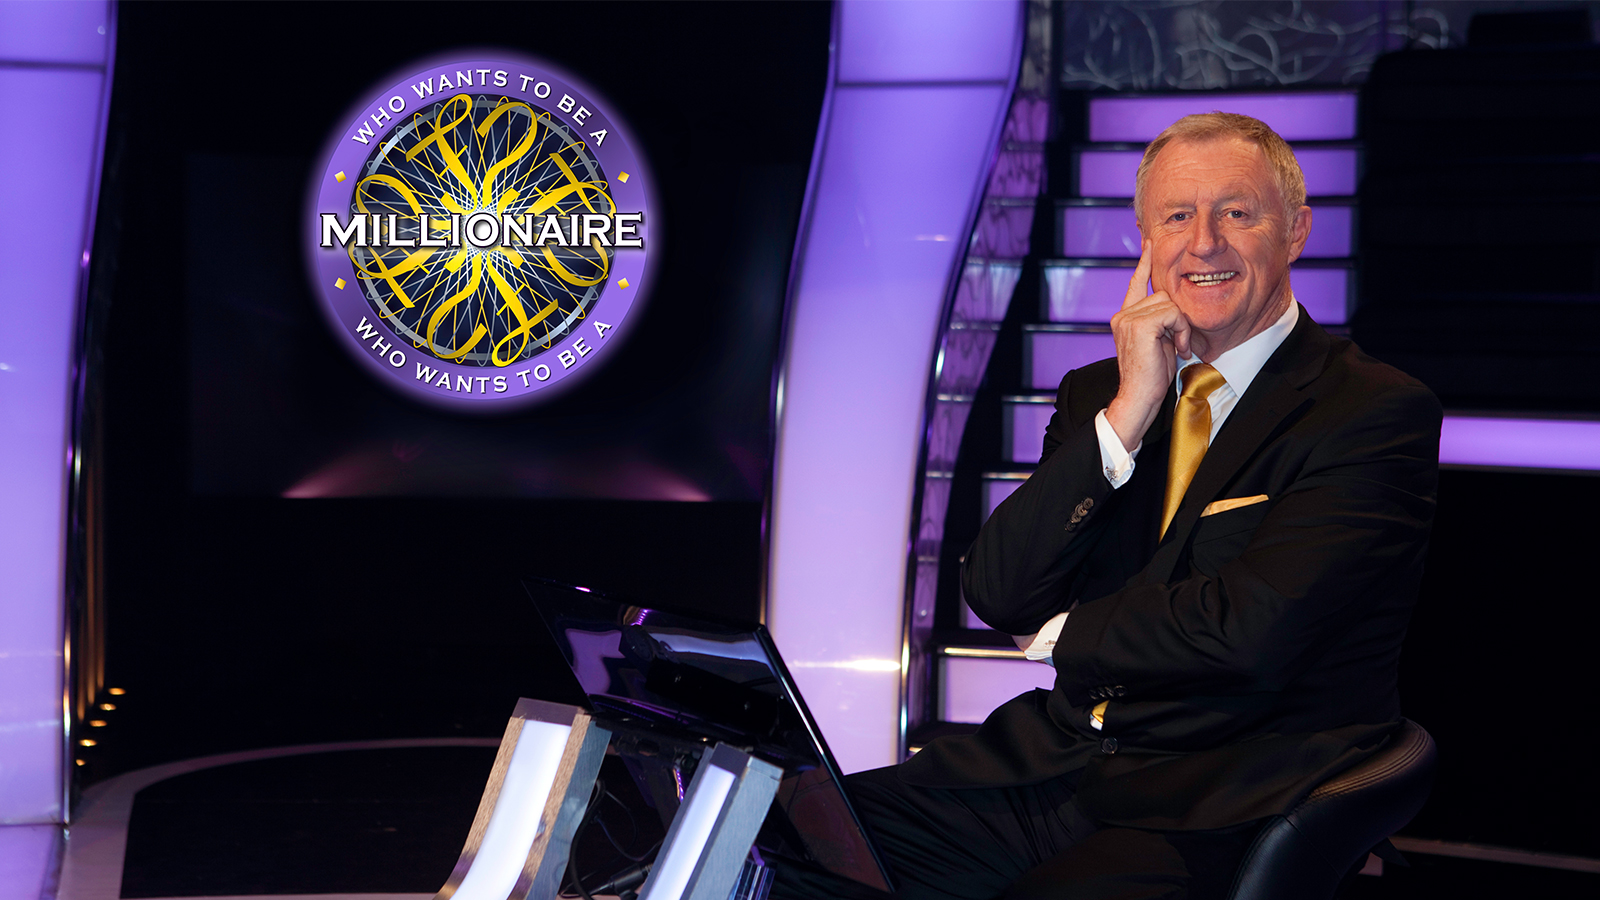 Classic Who Wants To Be A Millionaire